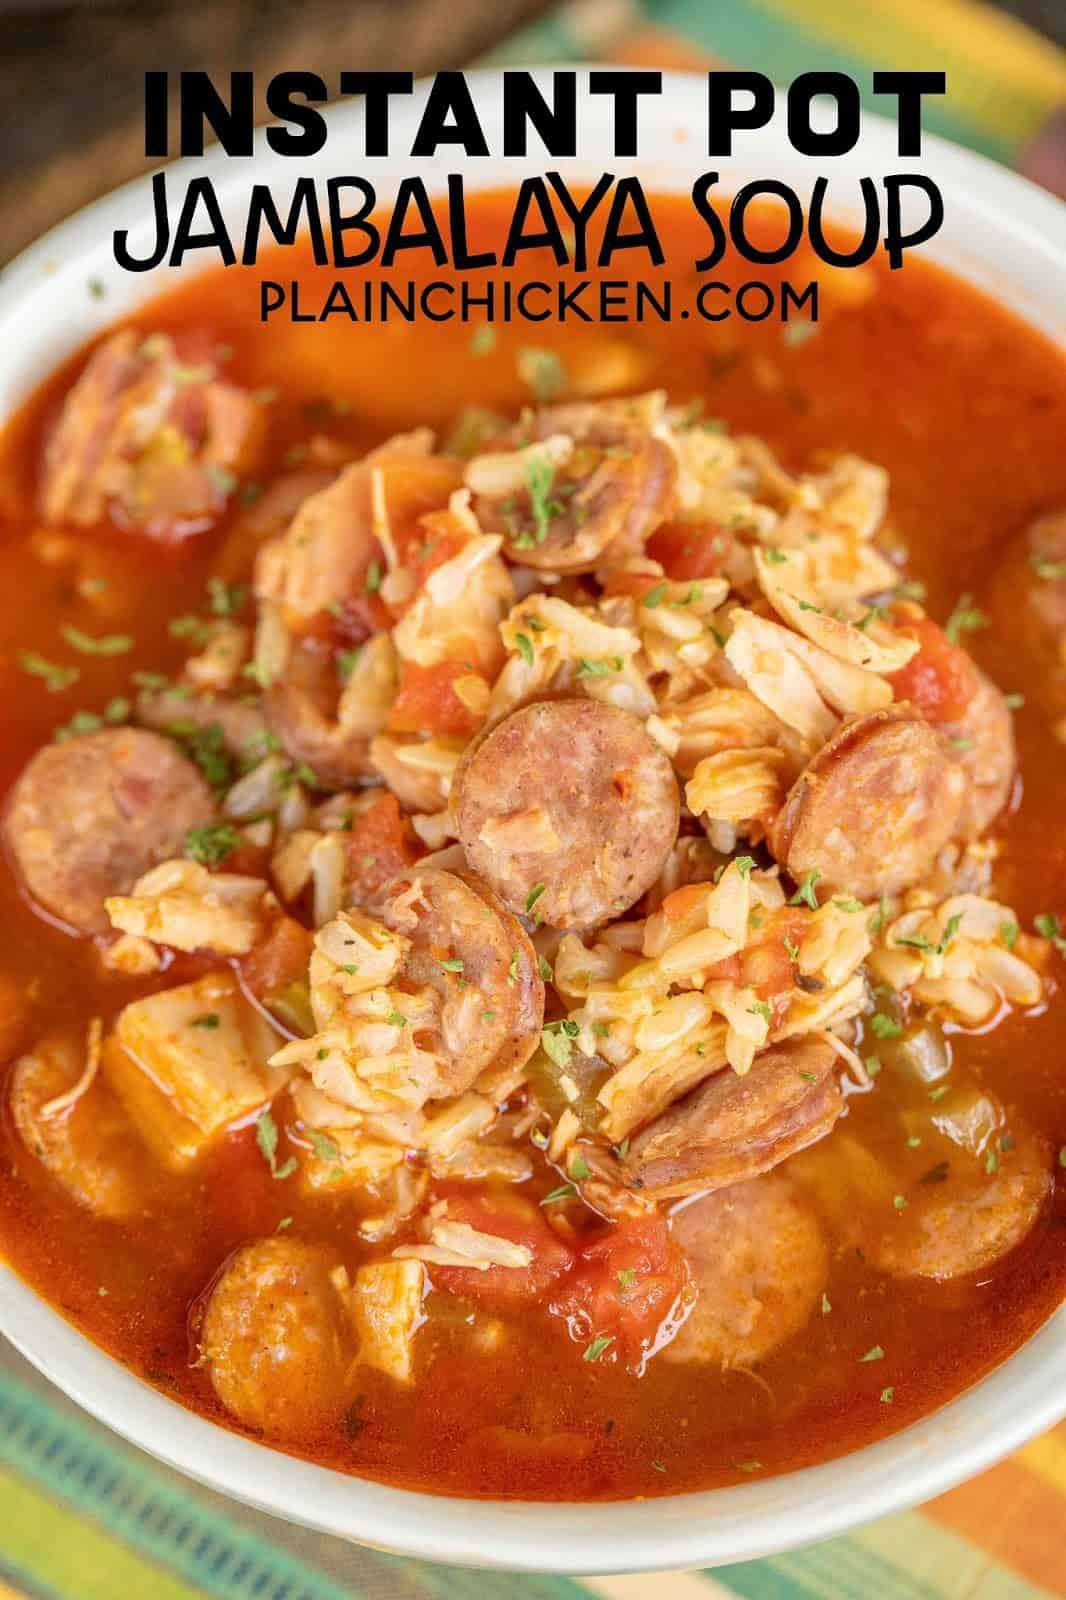 Instant Pot Jambalaya Soup - perfect for Mardi Gras!!! Smoked Sausage, Chicken, chicken broth, diced tomatoes and green chiles, tomato paste, Creole seasoning, and brown rice. Serve with some homemade cornbread for an easy and delicious meal! Our whole family LOVED this yummy cajun/creole soup. SO easy to make in the electric pressure cooker! #instantpot #pressurecooker #mardigras #soup #stew